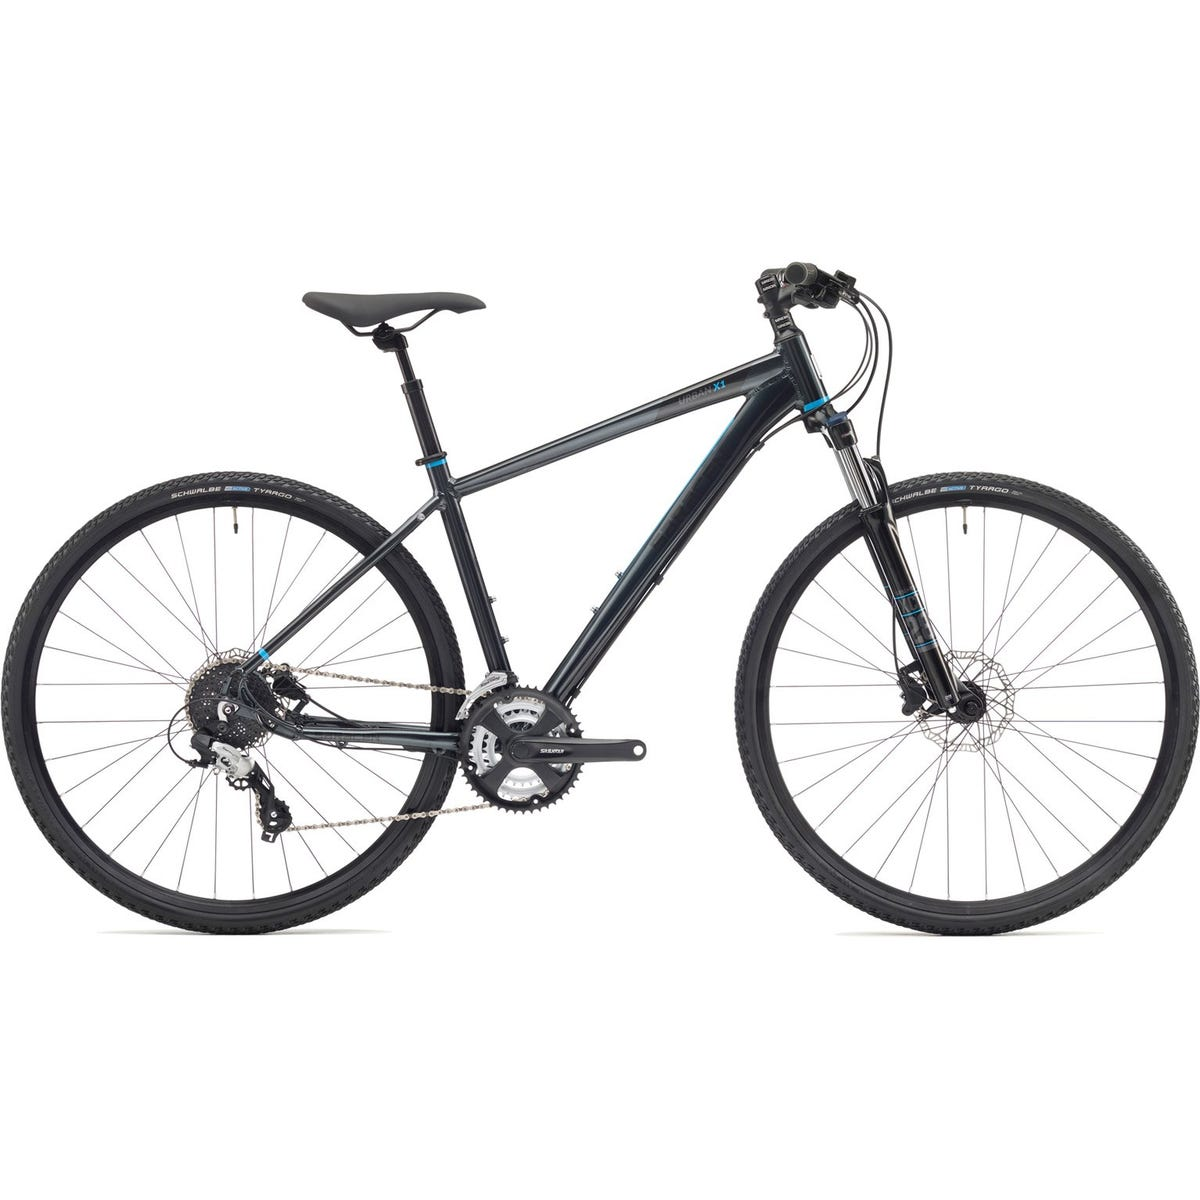 Saracen Urban Cross 1 mens 16 inch bike EX DEMO